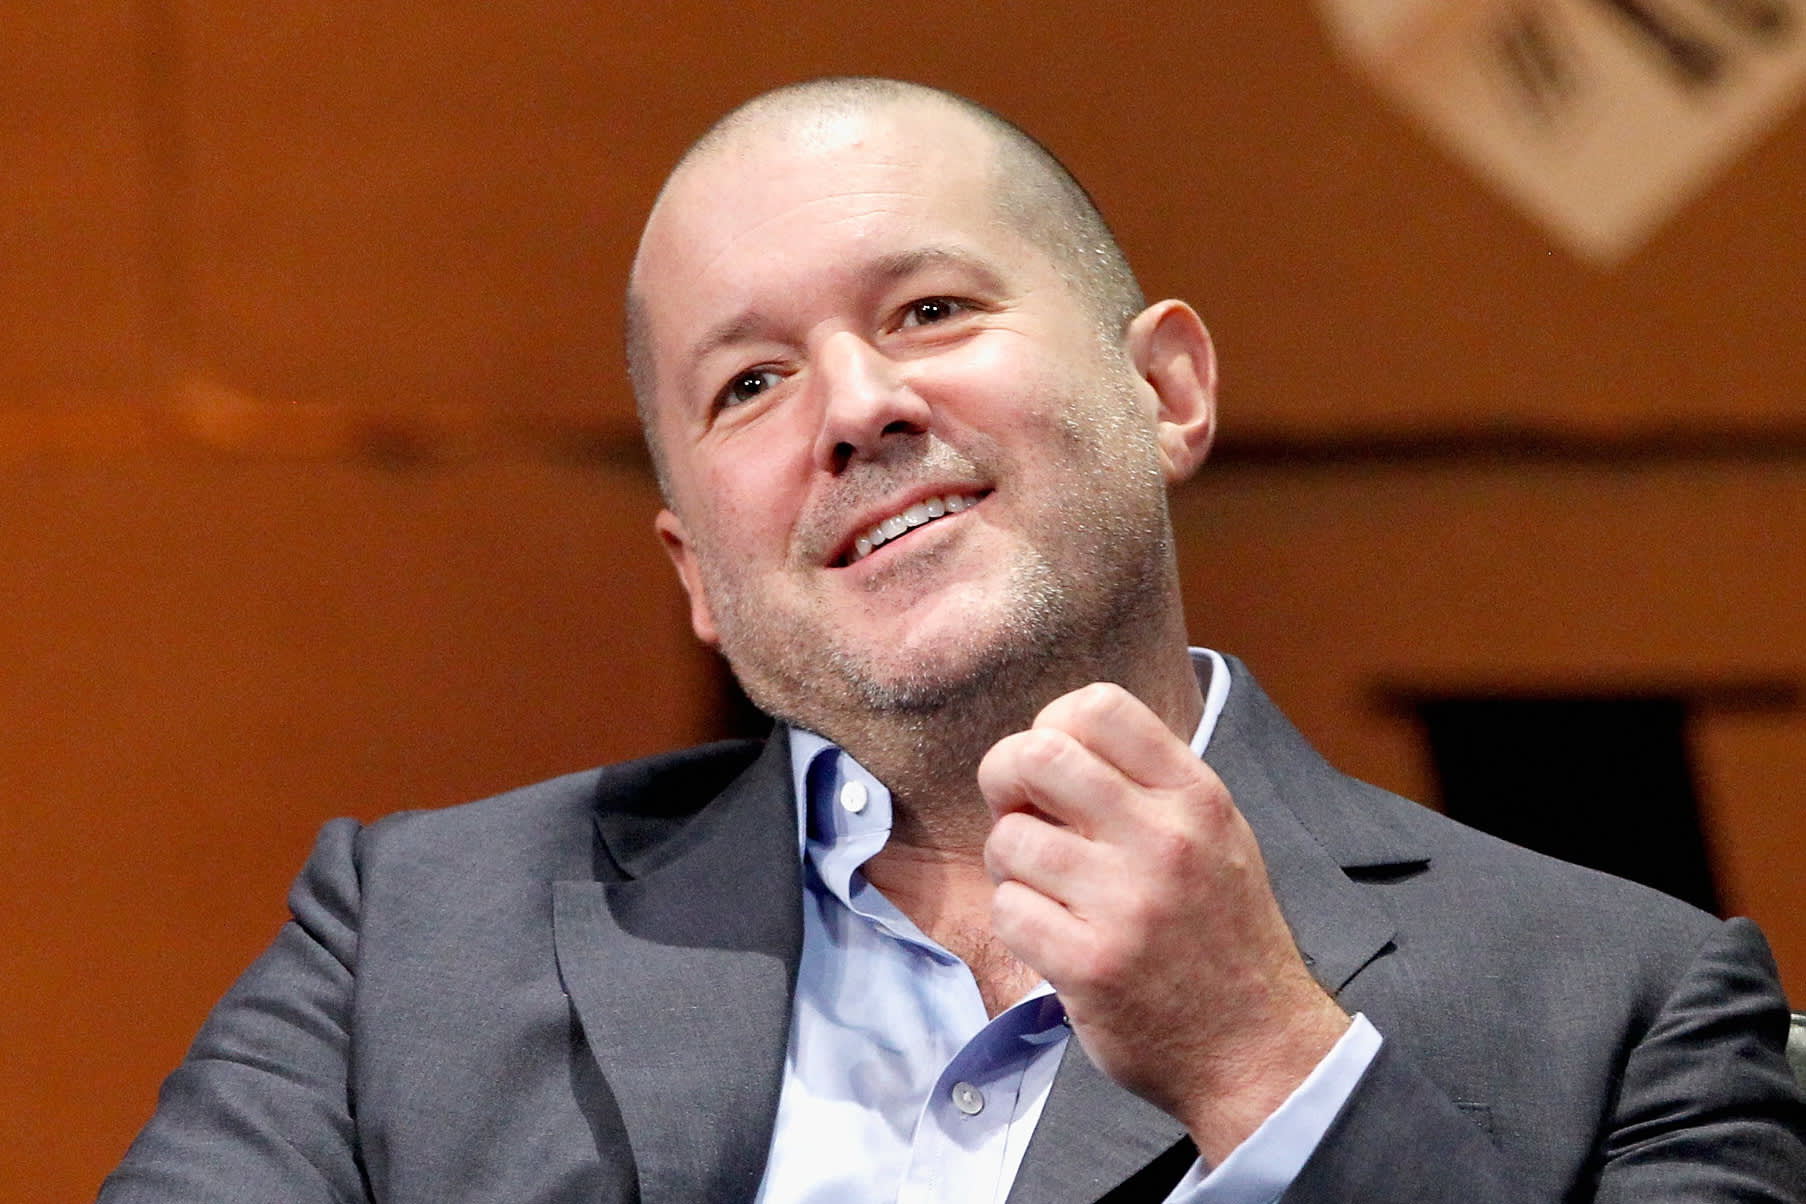 Apple's design chief, Jony Ive, was often absent over the last few years, new report says